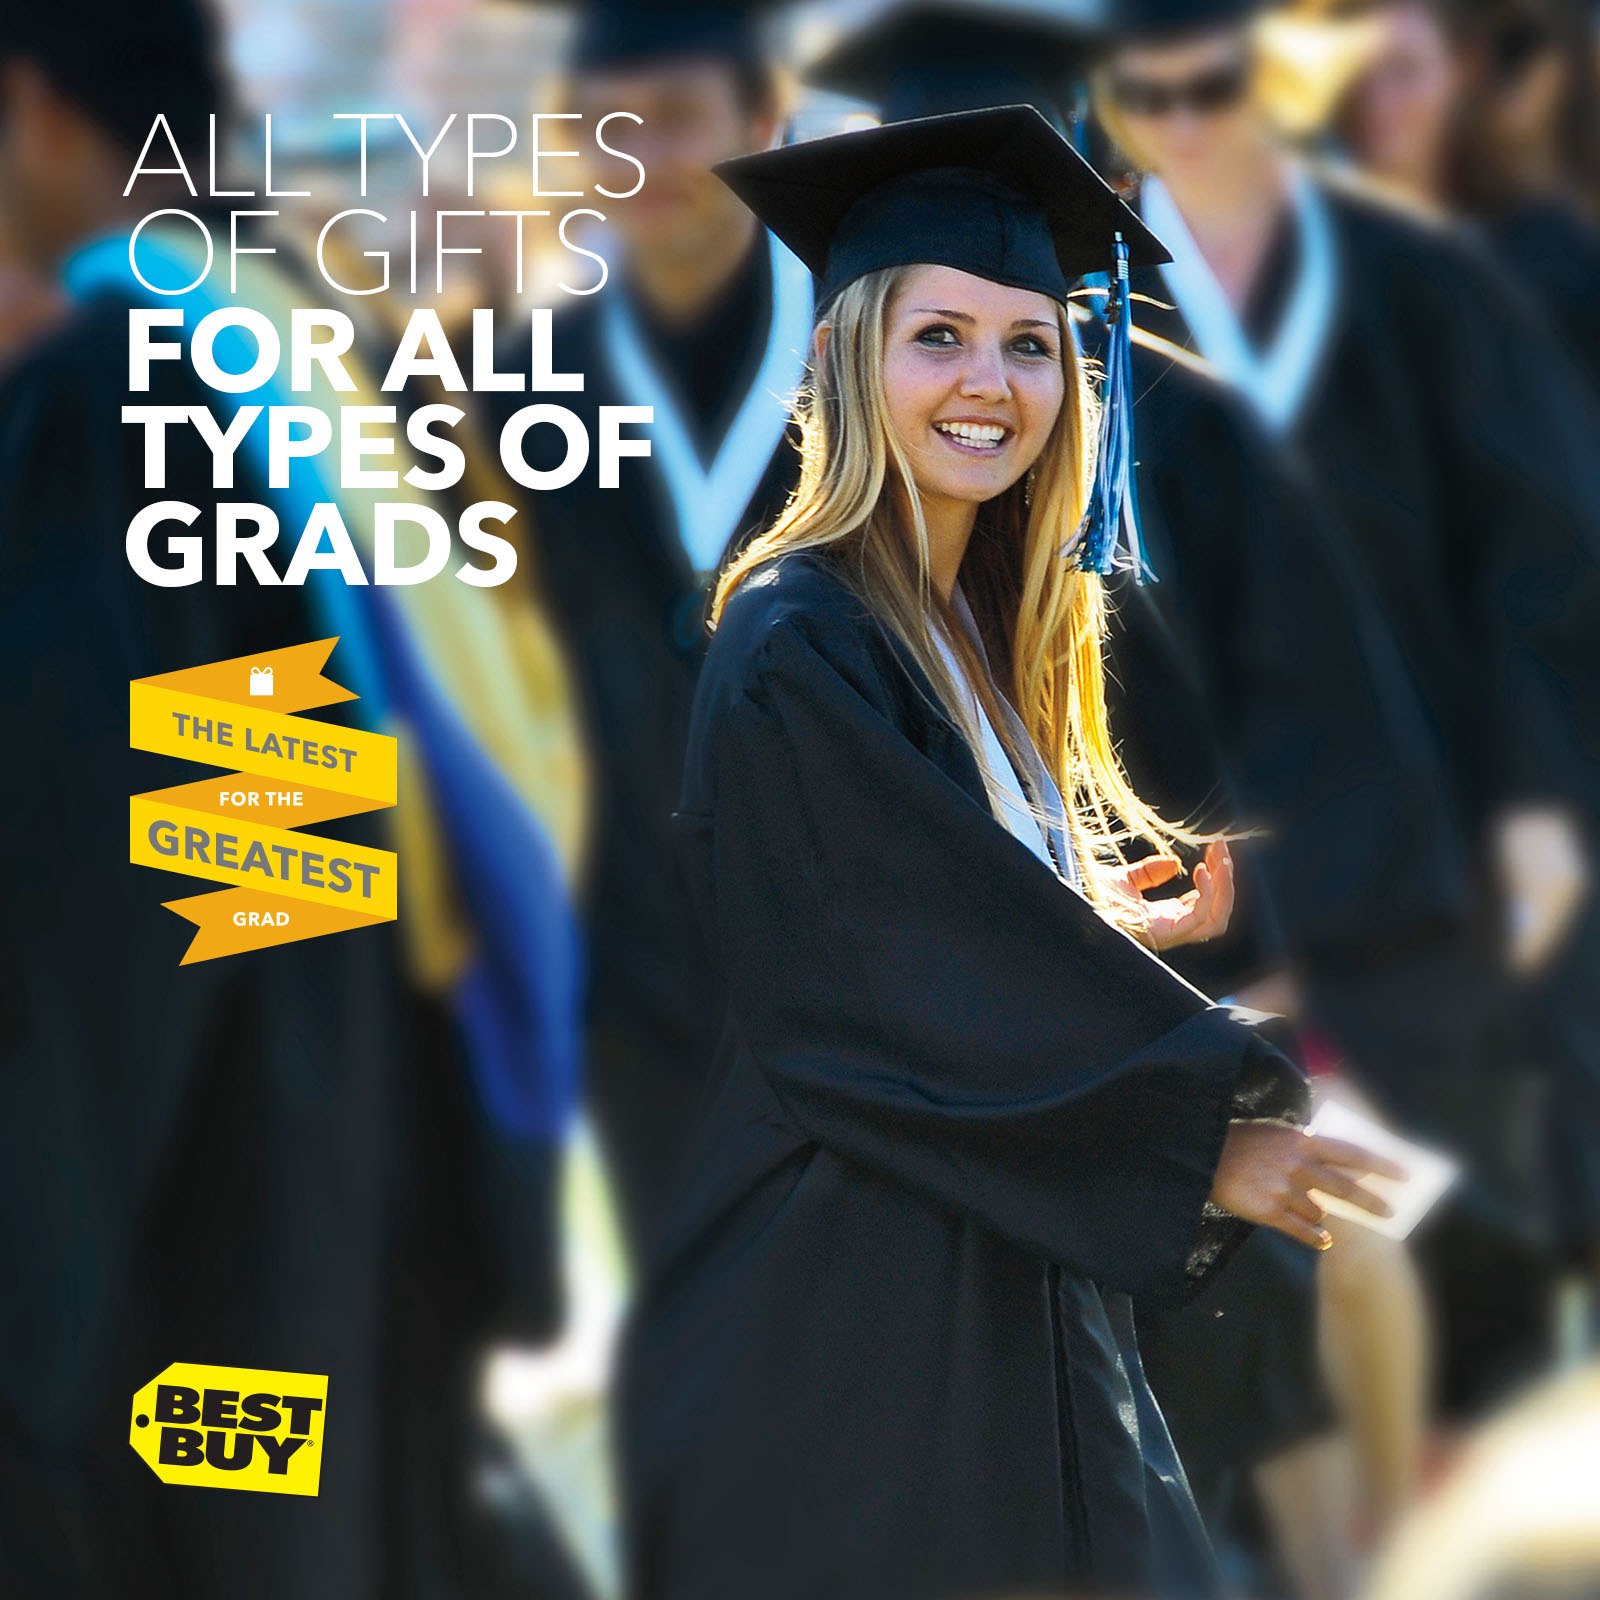 Find the Perfect Gift for Your Graduate at Best Buy #GreatestGrad